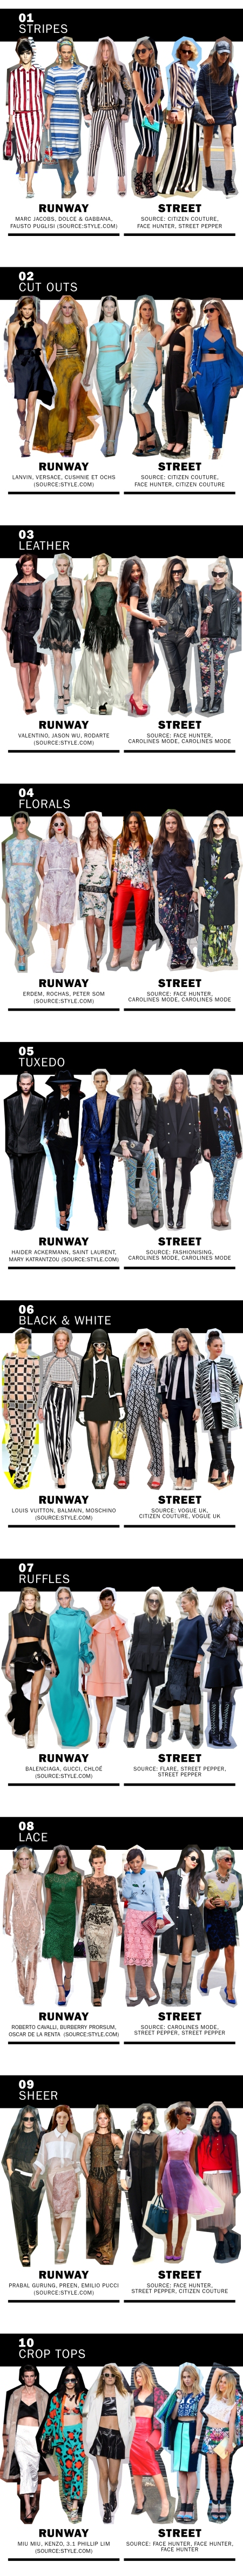 2013_ss_trends